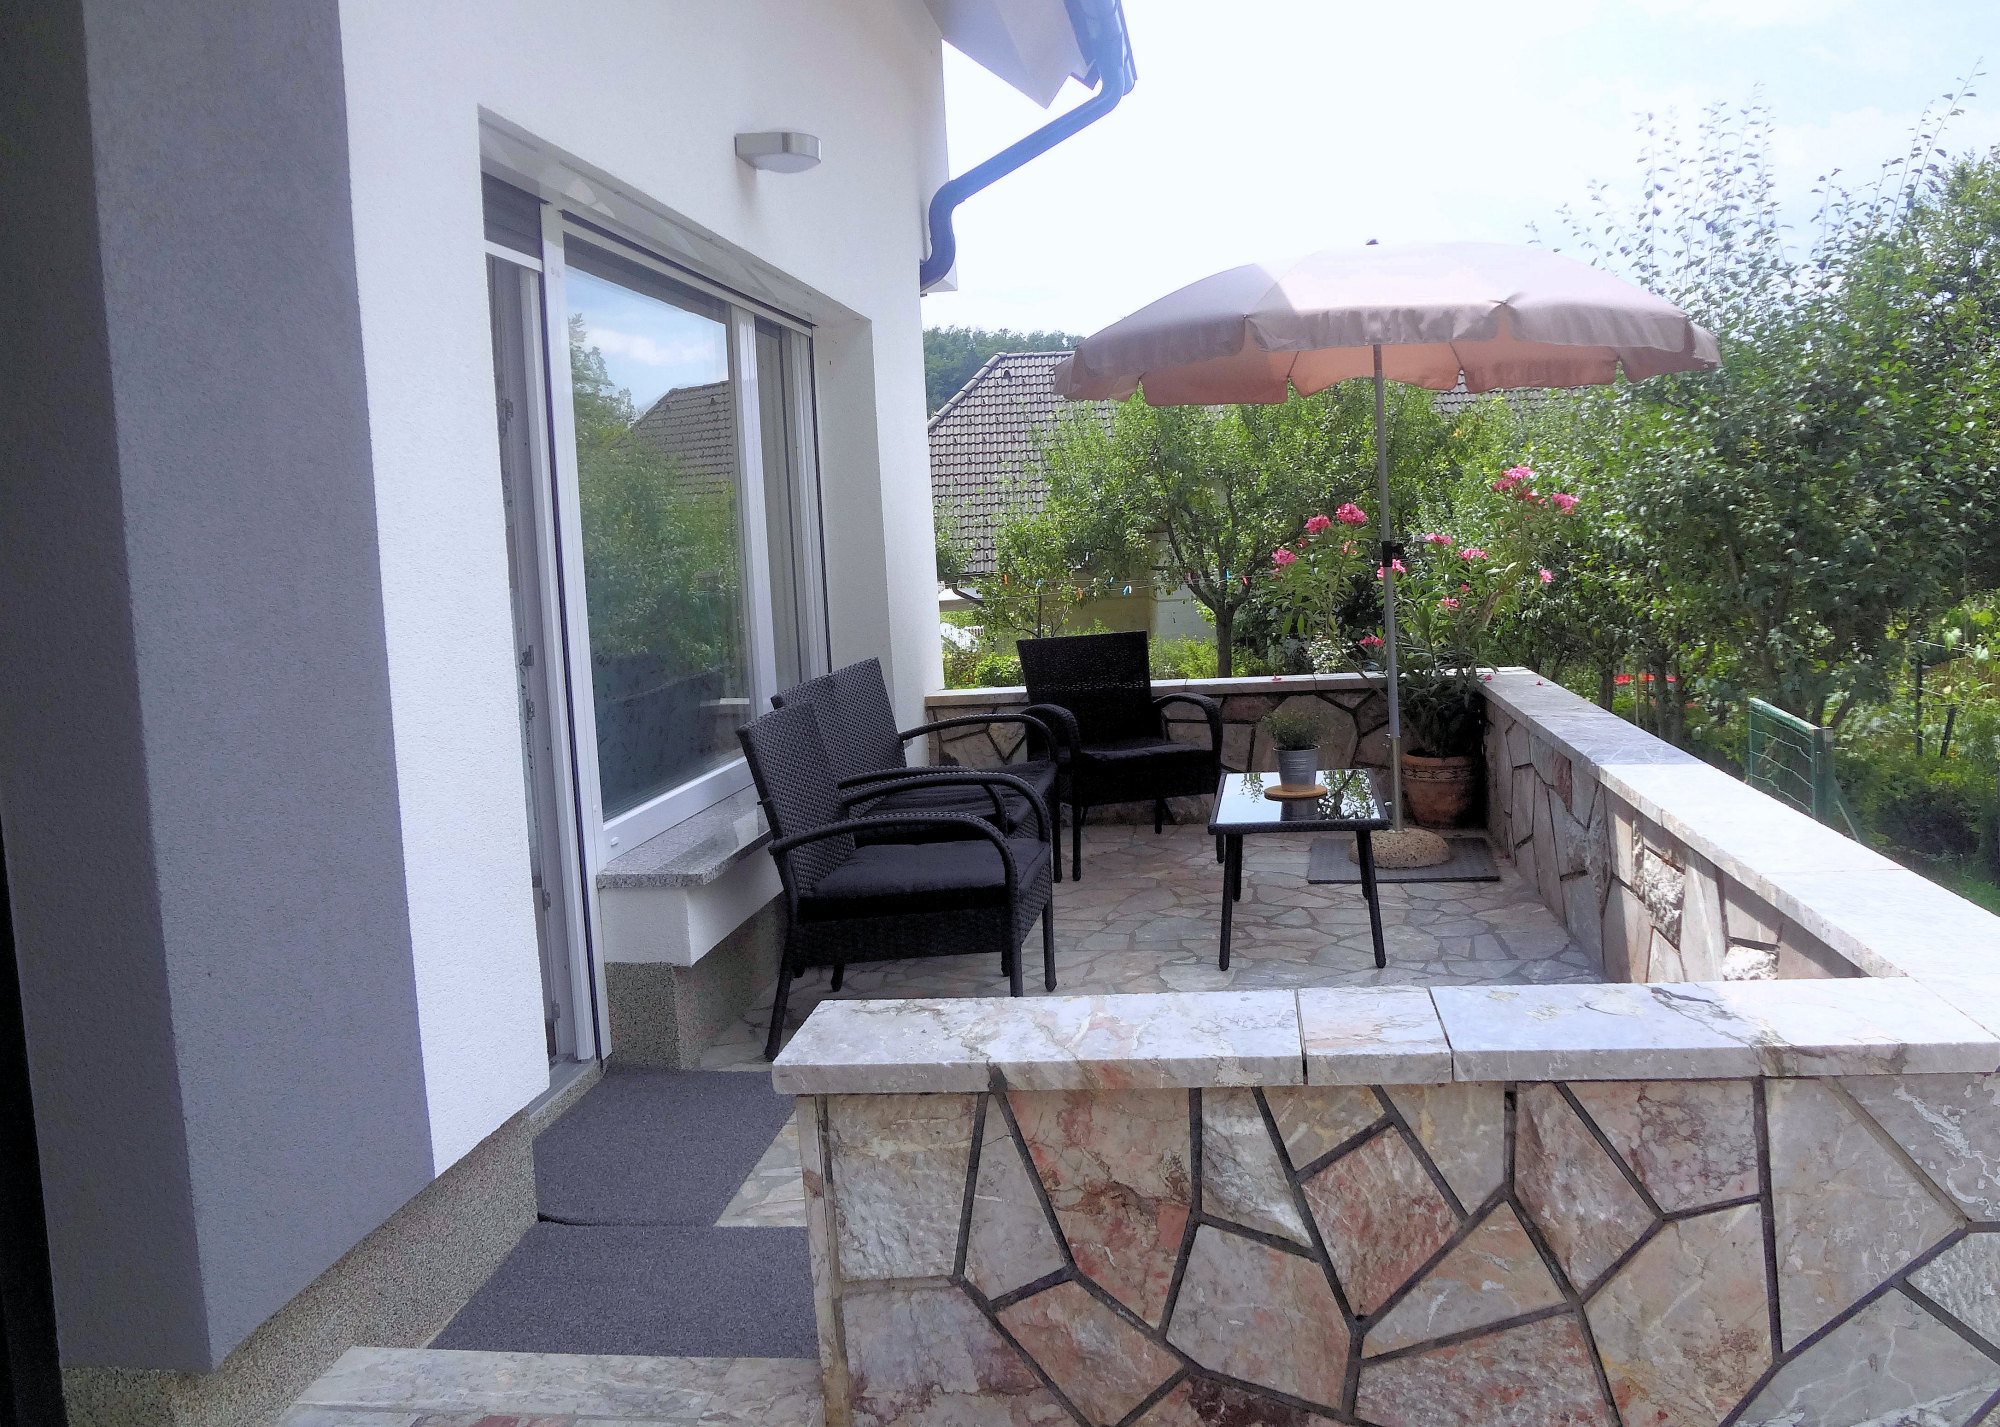 A balcony with garden furniture, Apartments Fine Stay in the Gorenjska region of Slovenia